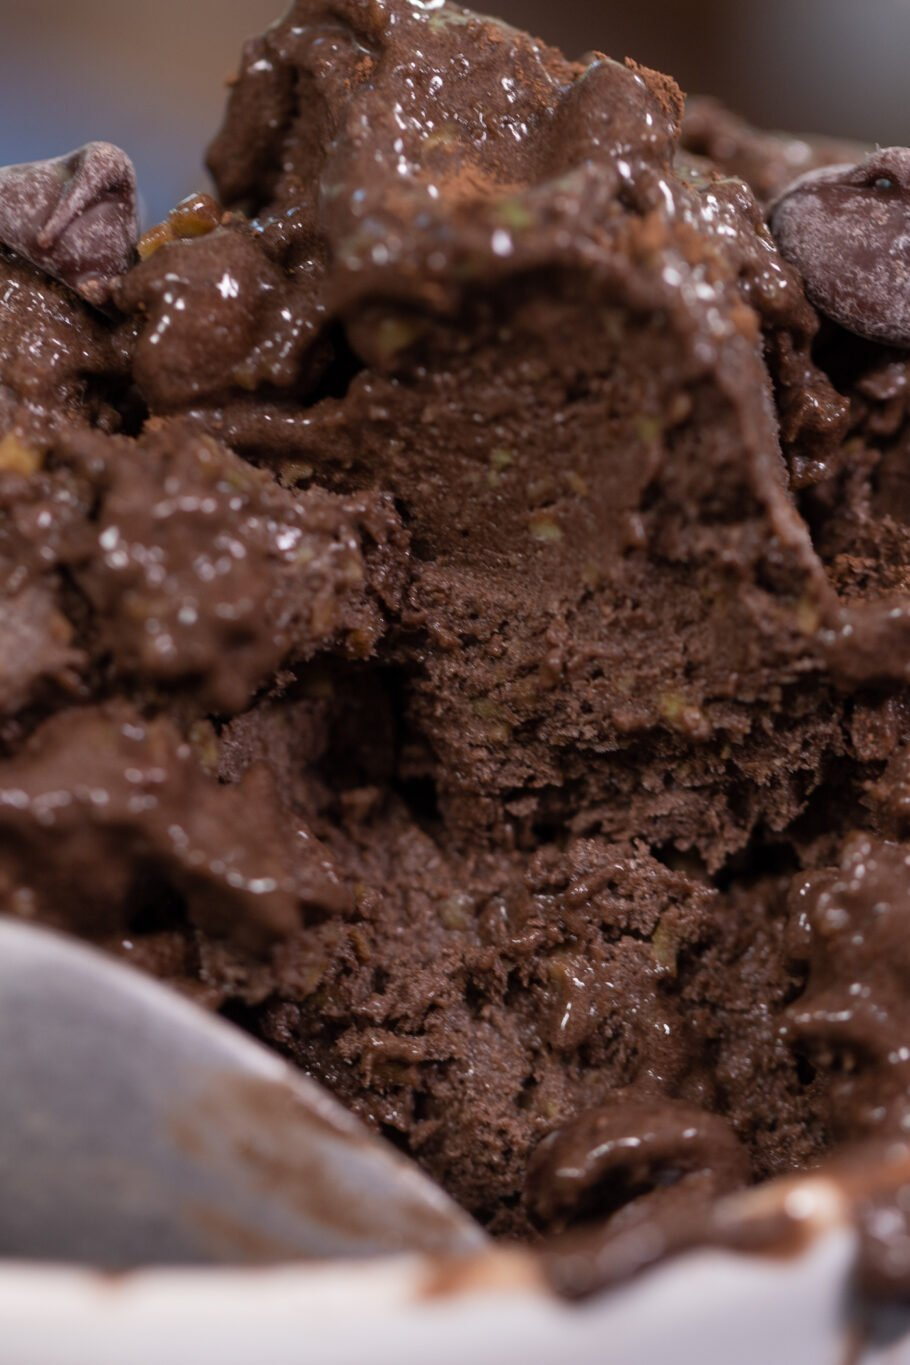 Chocolate Keto Ice Cream Recipe